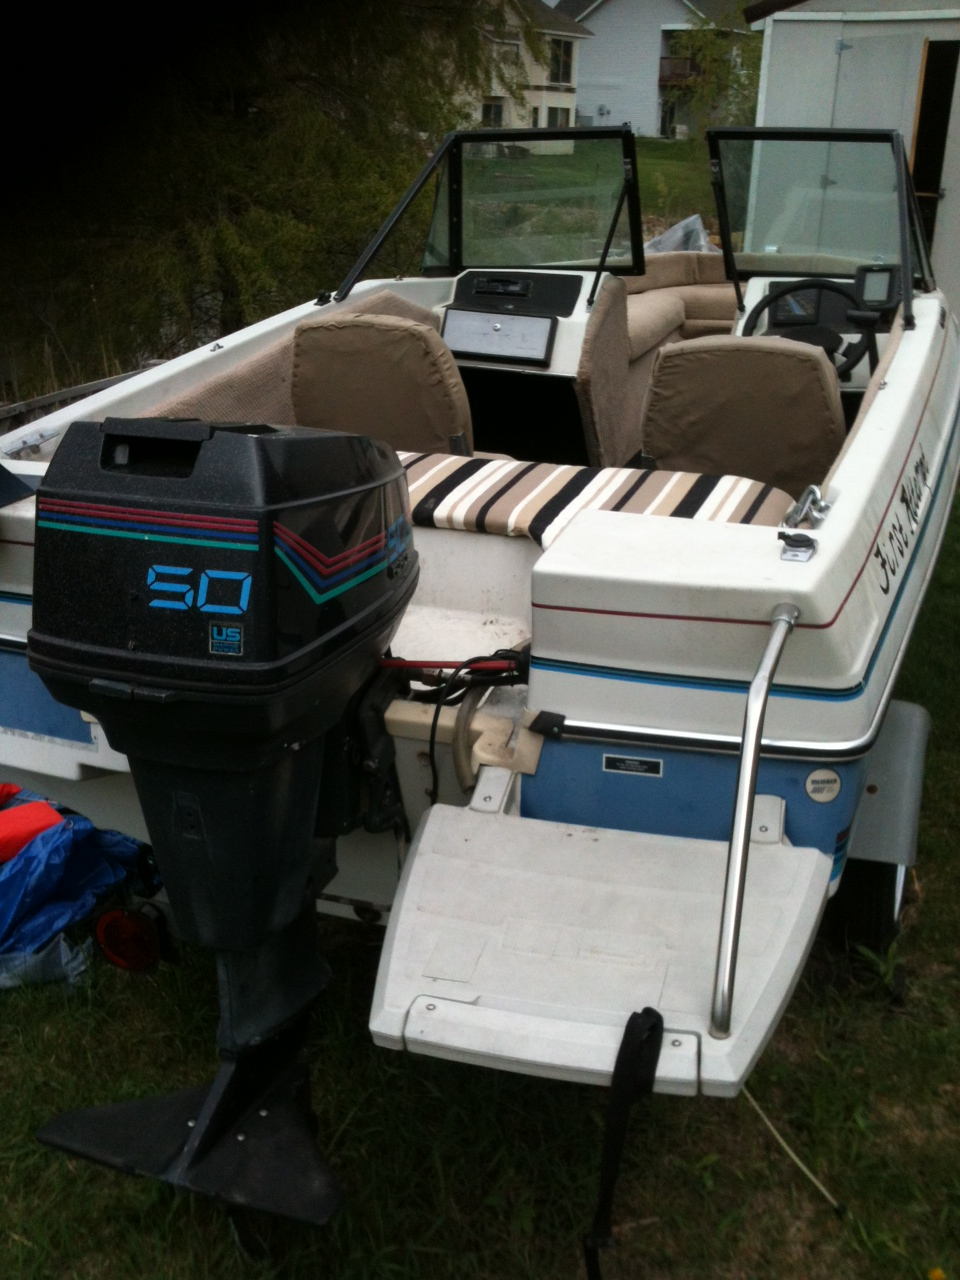 Contact Marcus at 612-803-5211 if you are interested in this boat. Please serious buyers only. If the boat is still posted it is still for sale. & Emu0027s Soapbox: 1988 15u0027 Bayliner Capri run-about boat with 50 hp ...